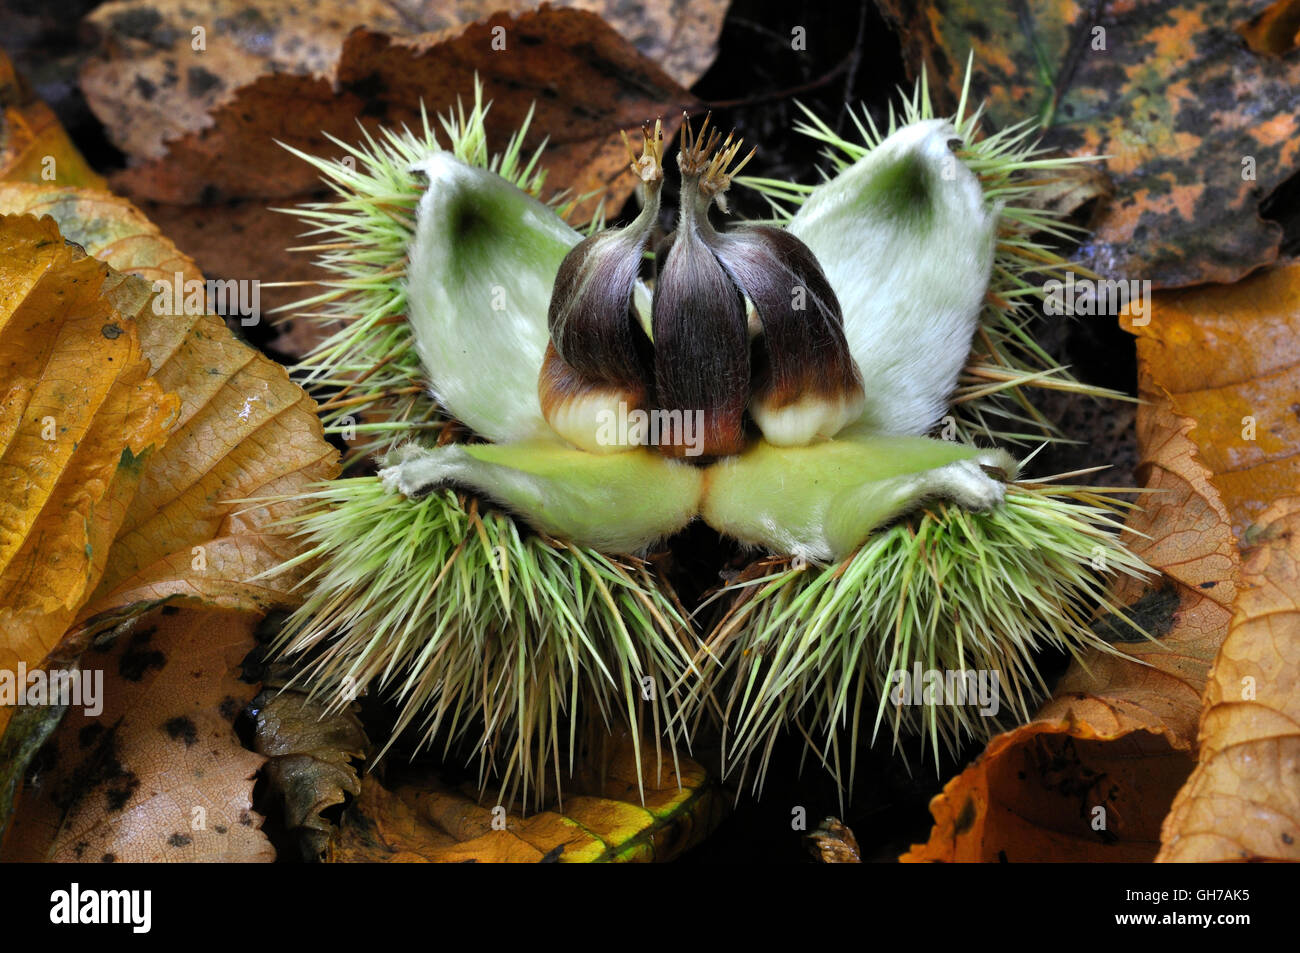 sweet chestnut castanea sativa - Stock Image